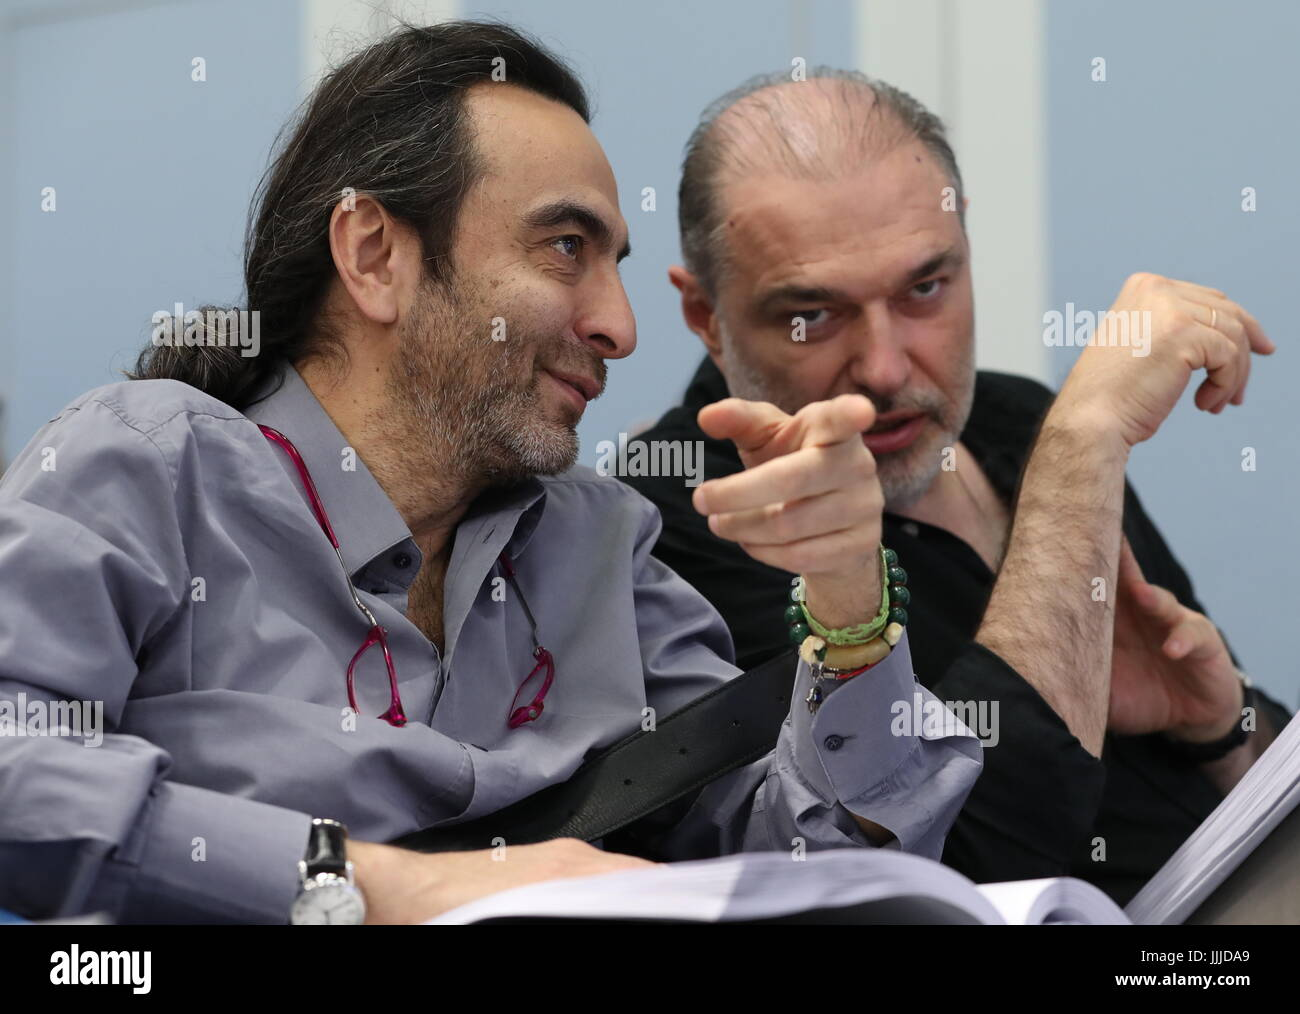 Moscow, Russia. 20th July, 2017. Film director Dzhanik Fayziev (L) and film producer Anatoly Maksimov during a presentational - Stock Image